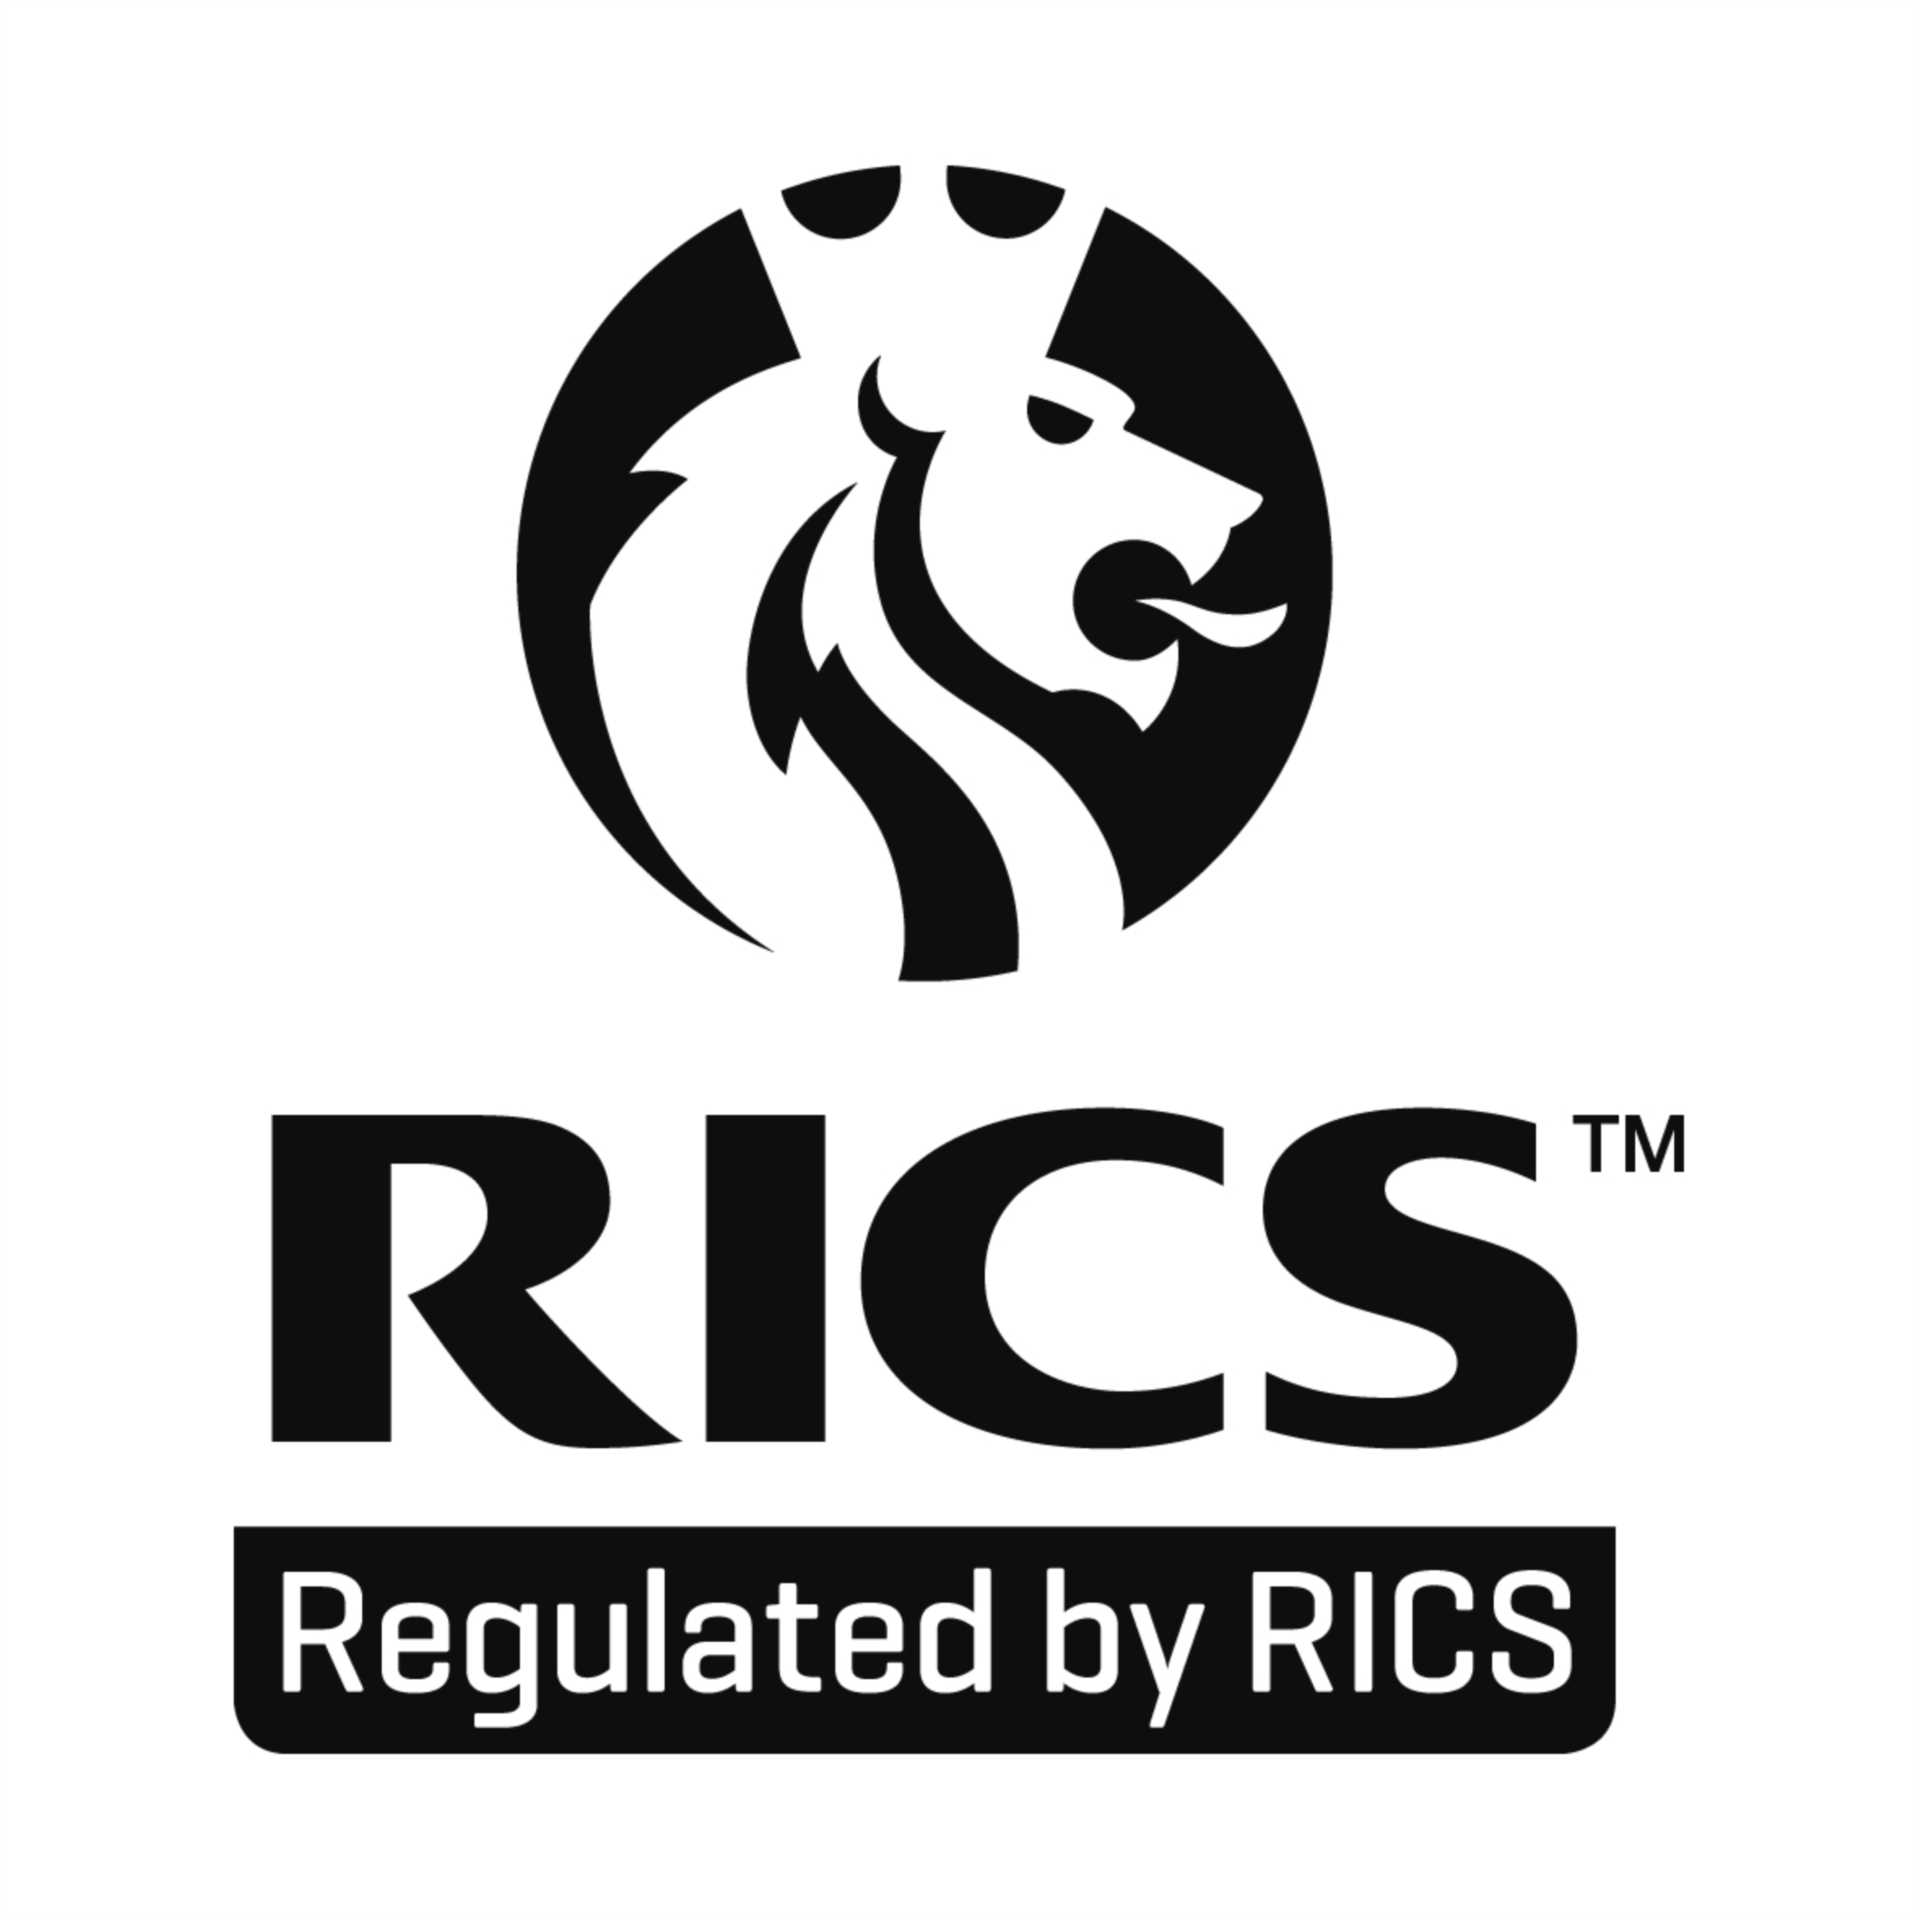 Marshall Property - Regulated by RICS